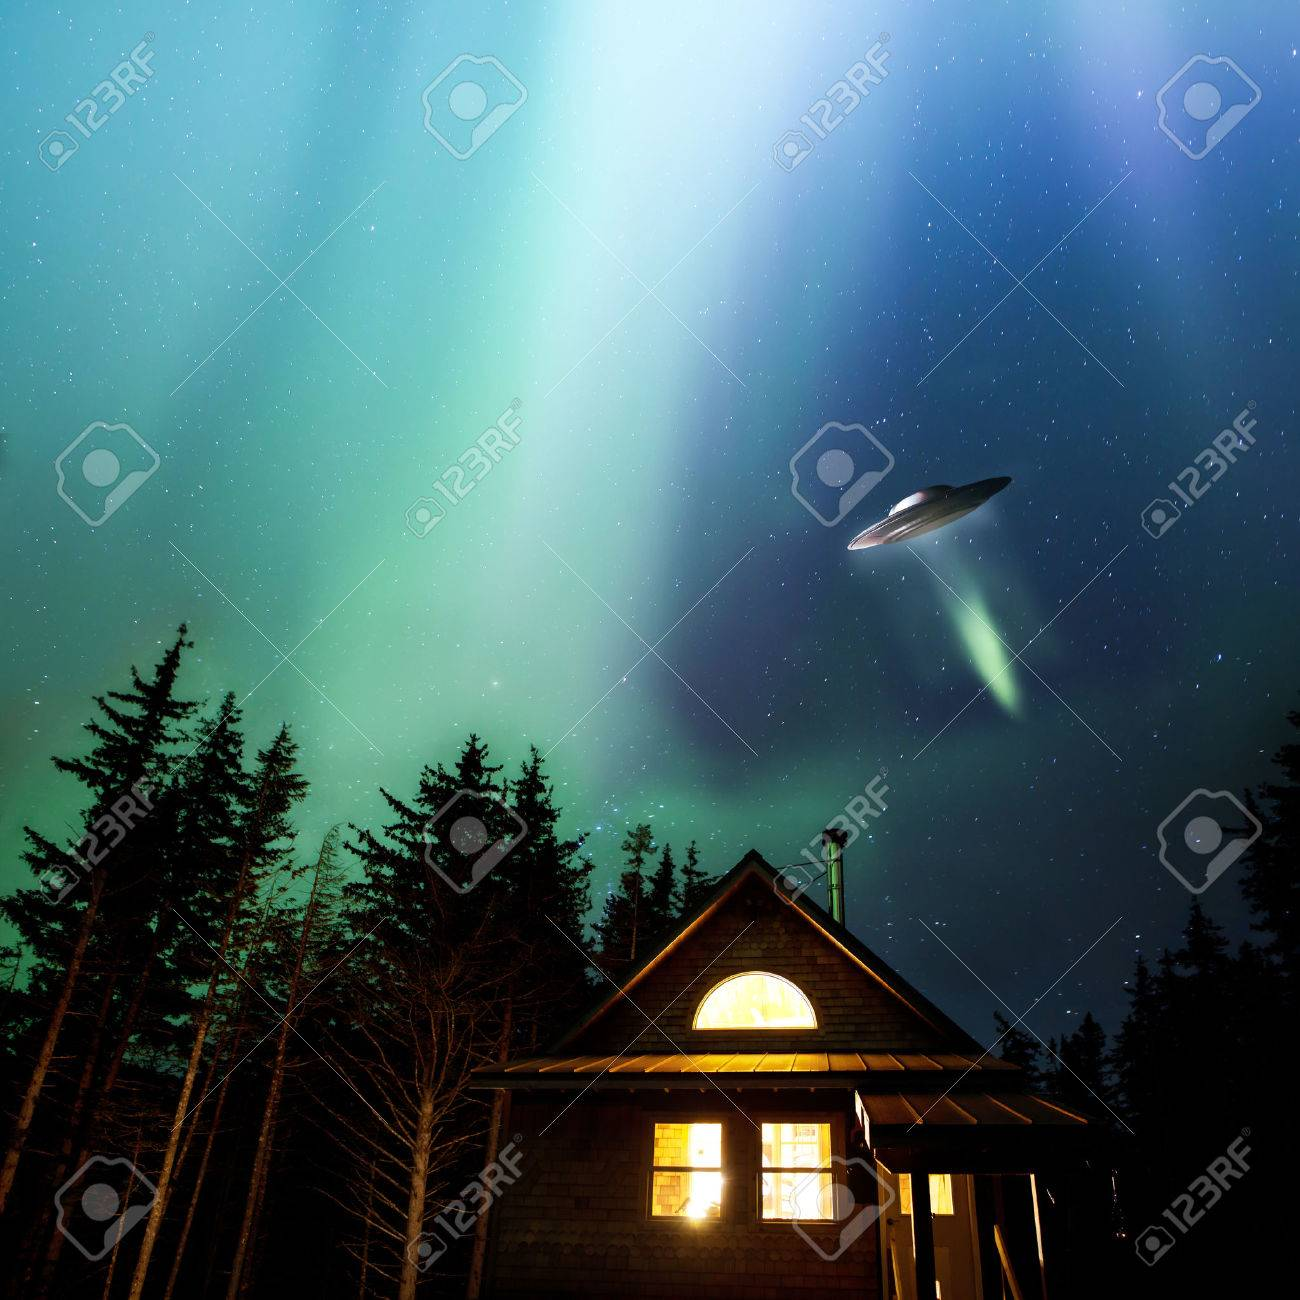 UFO flying over an Alaskan cabin with colorful nothern lights in the night sky. Stock Photo - 24603674